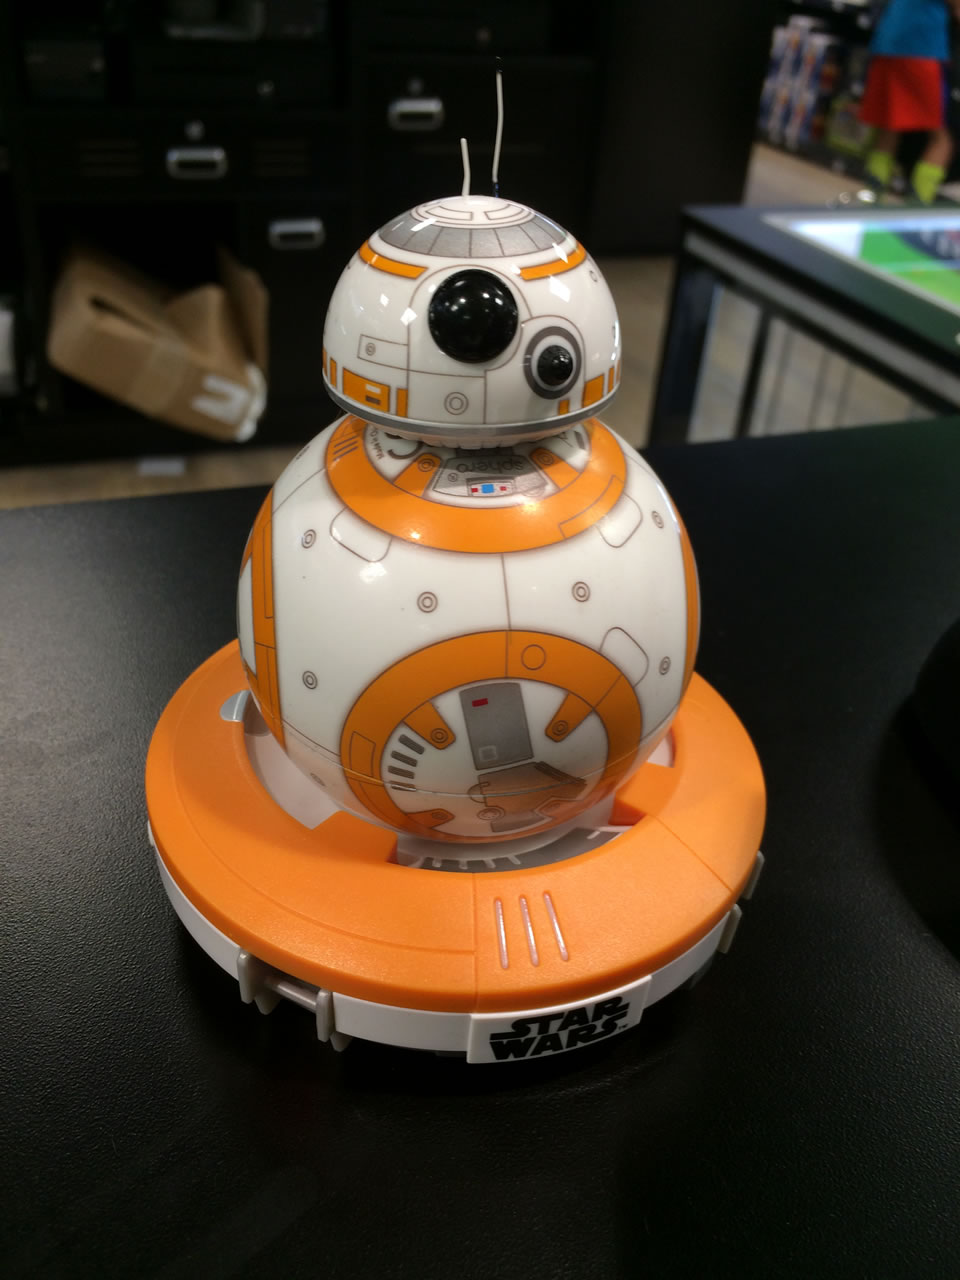 23 thinkgeek store - sphero bb-8